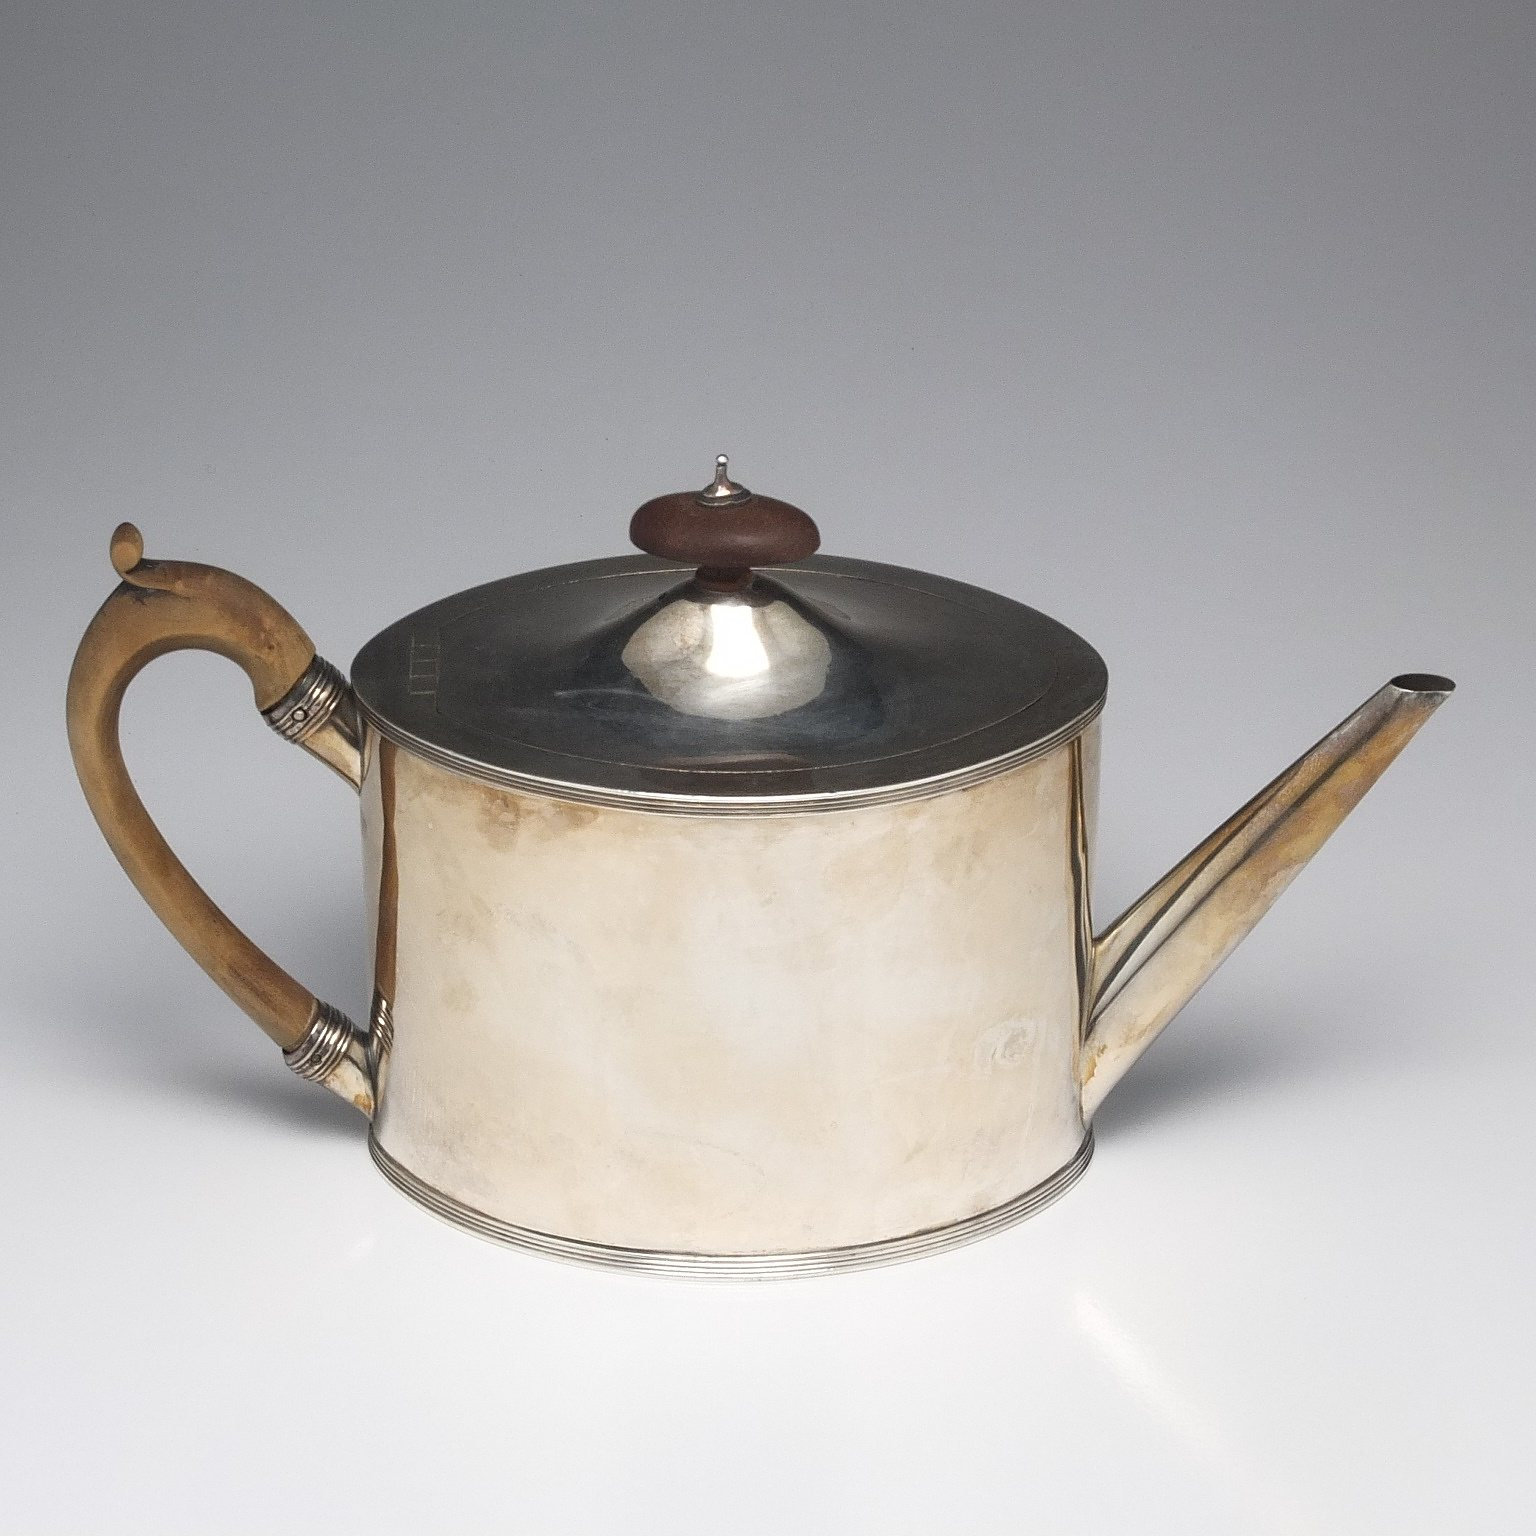 'George III Sterling Silver Teapot and Trivet Henry Chawner London 1790'